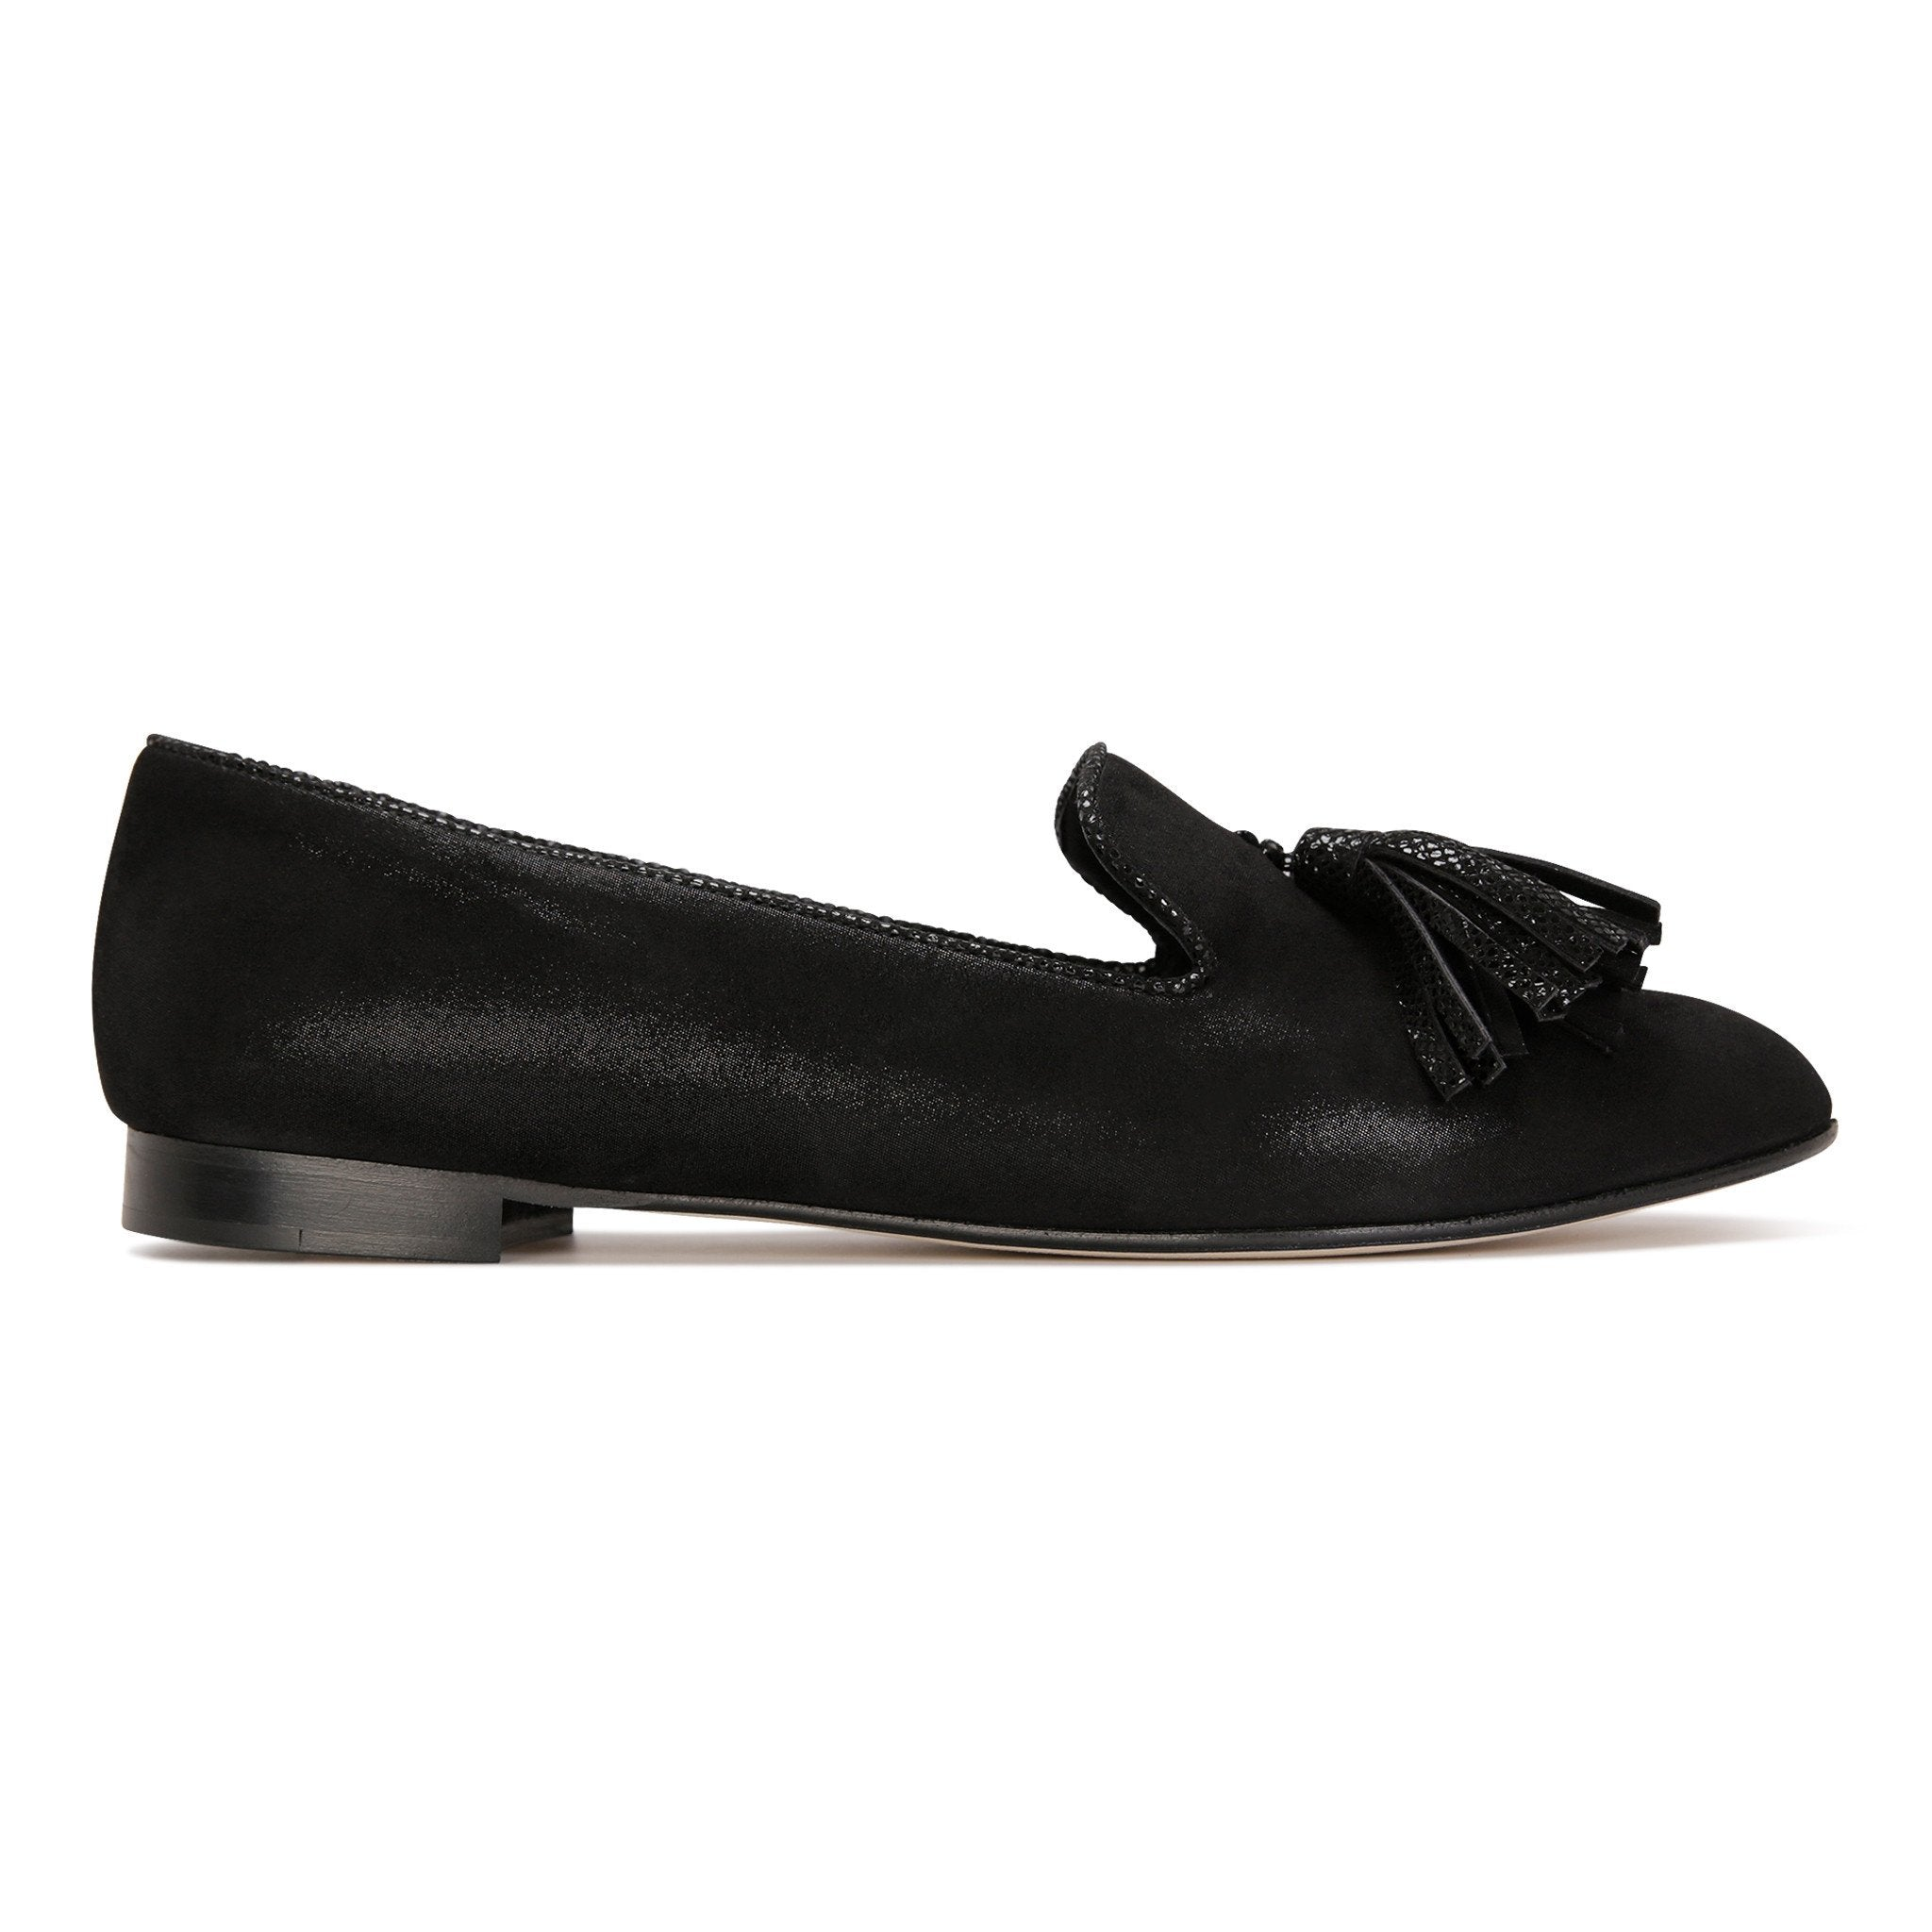 PARMA - Hydra Nero + Karung, VIAJIYU - Women's Hand Made Sustainable Luxury Shoes. Made in Italy. Made to Order.